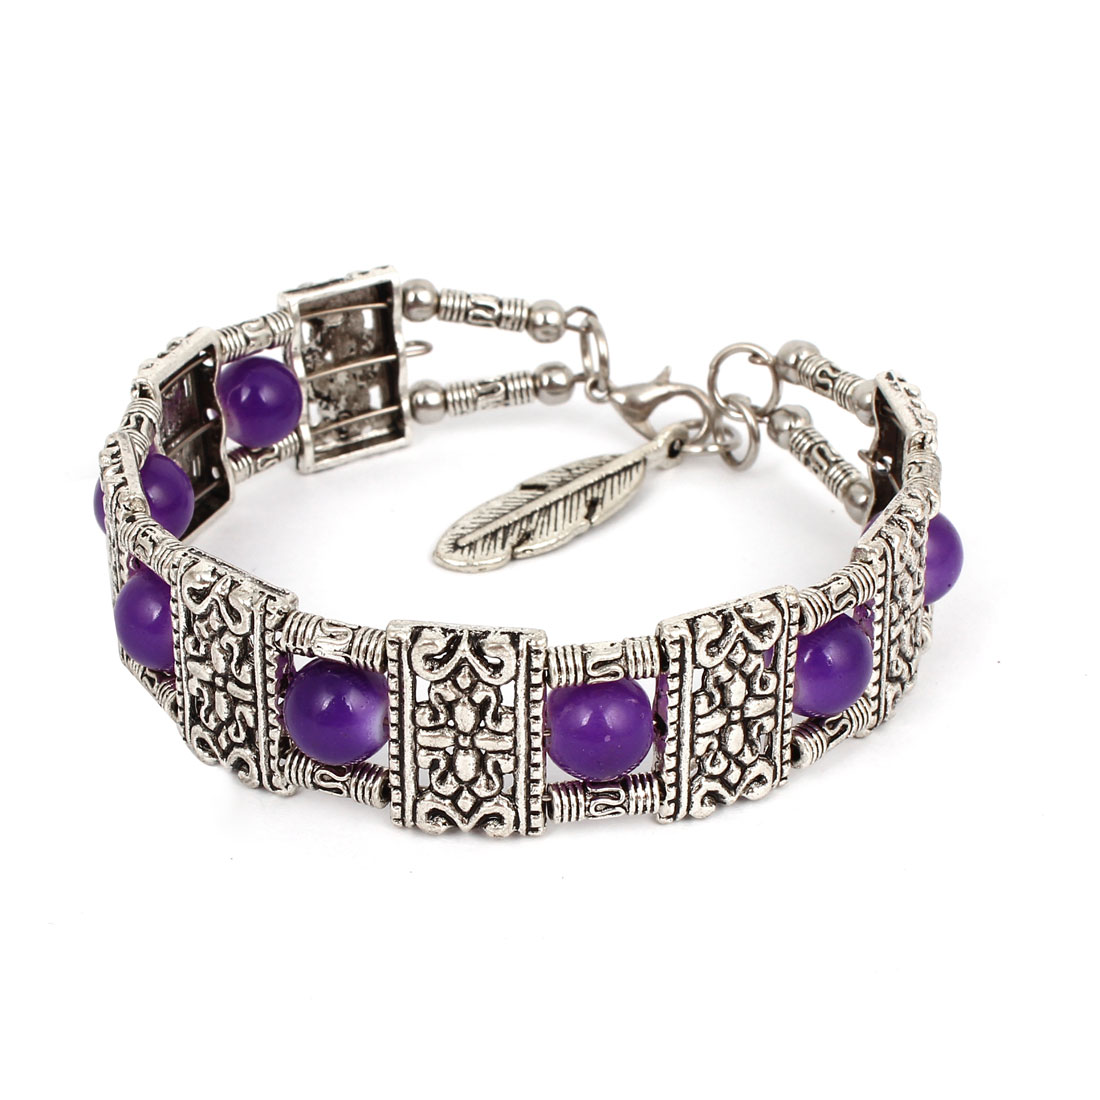 Purple Beads Accent Silver Tone Metal Chain Wrist Bangle Bracelet for Lady